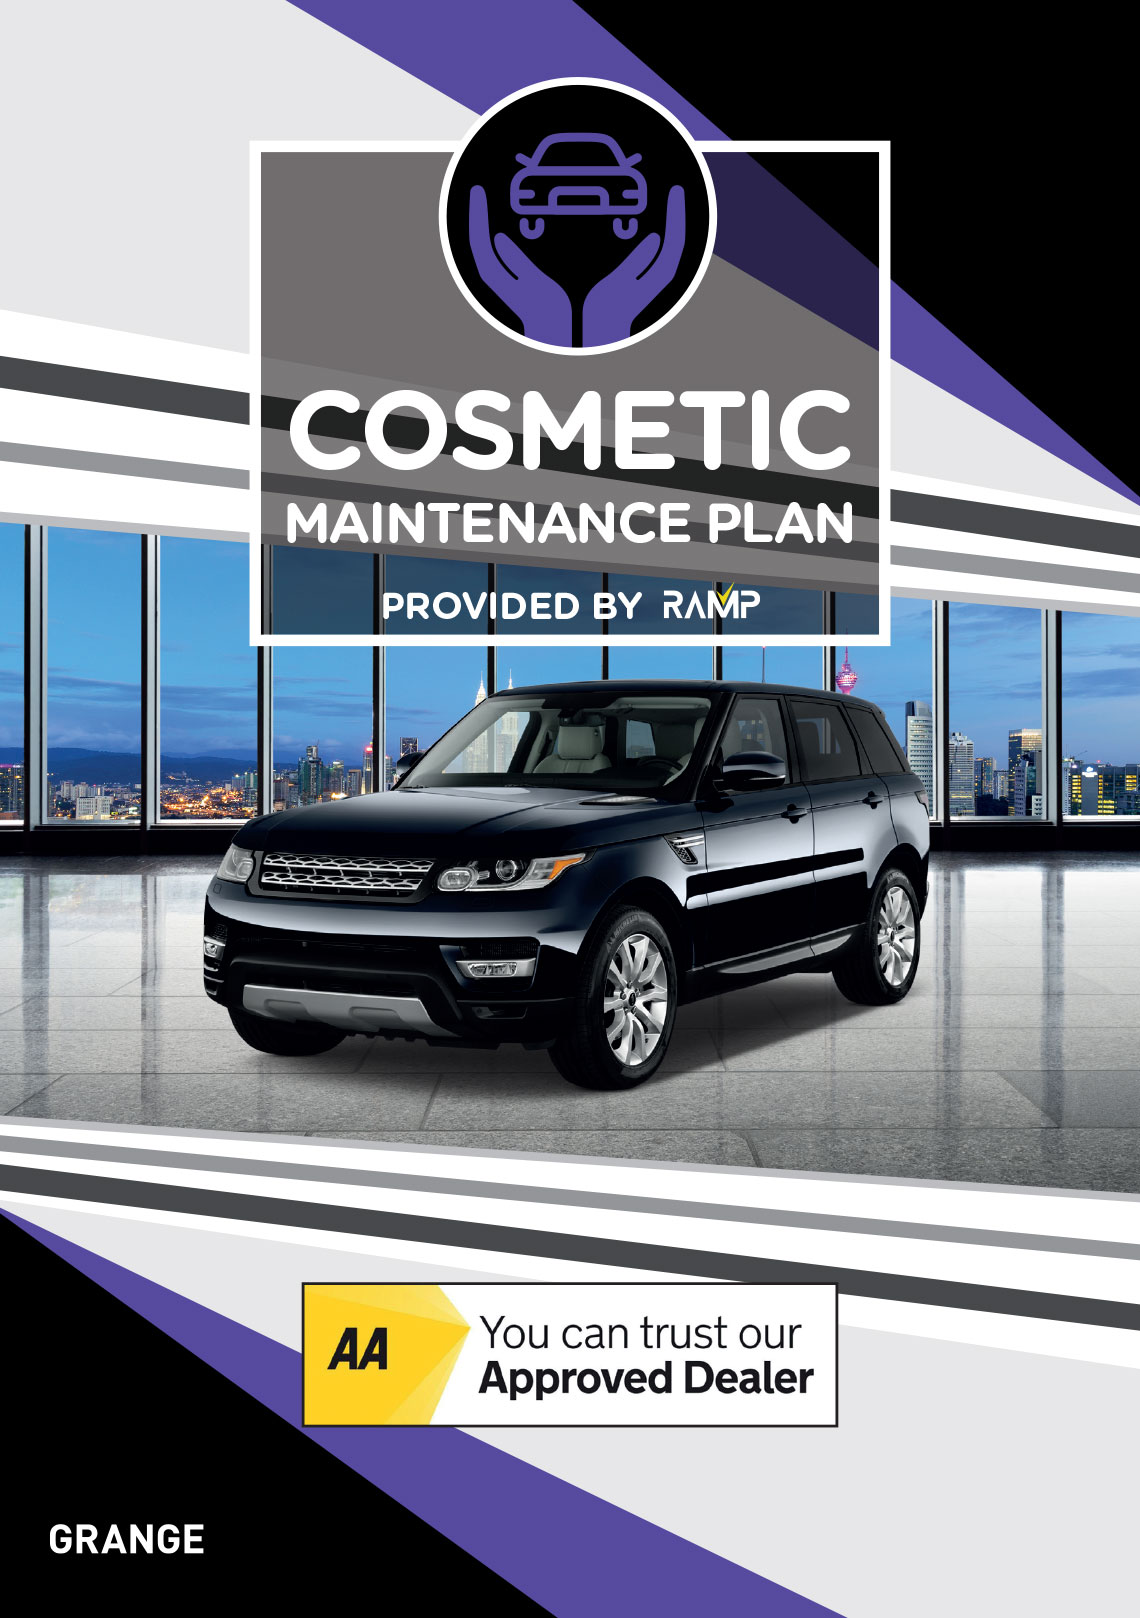 Cosmetic Maintenance Plan - Provided By RAMP